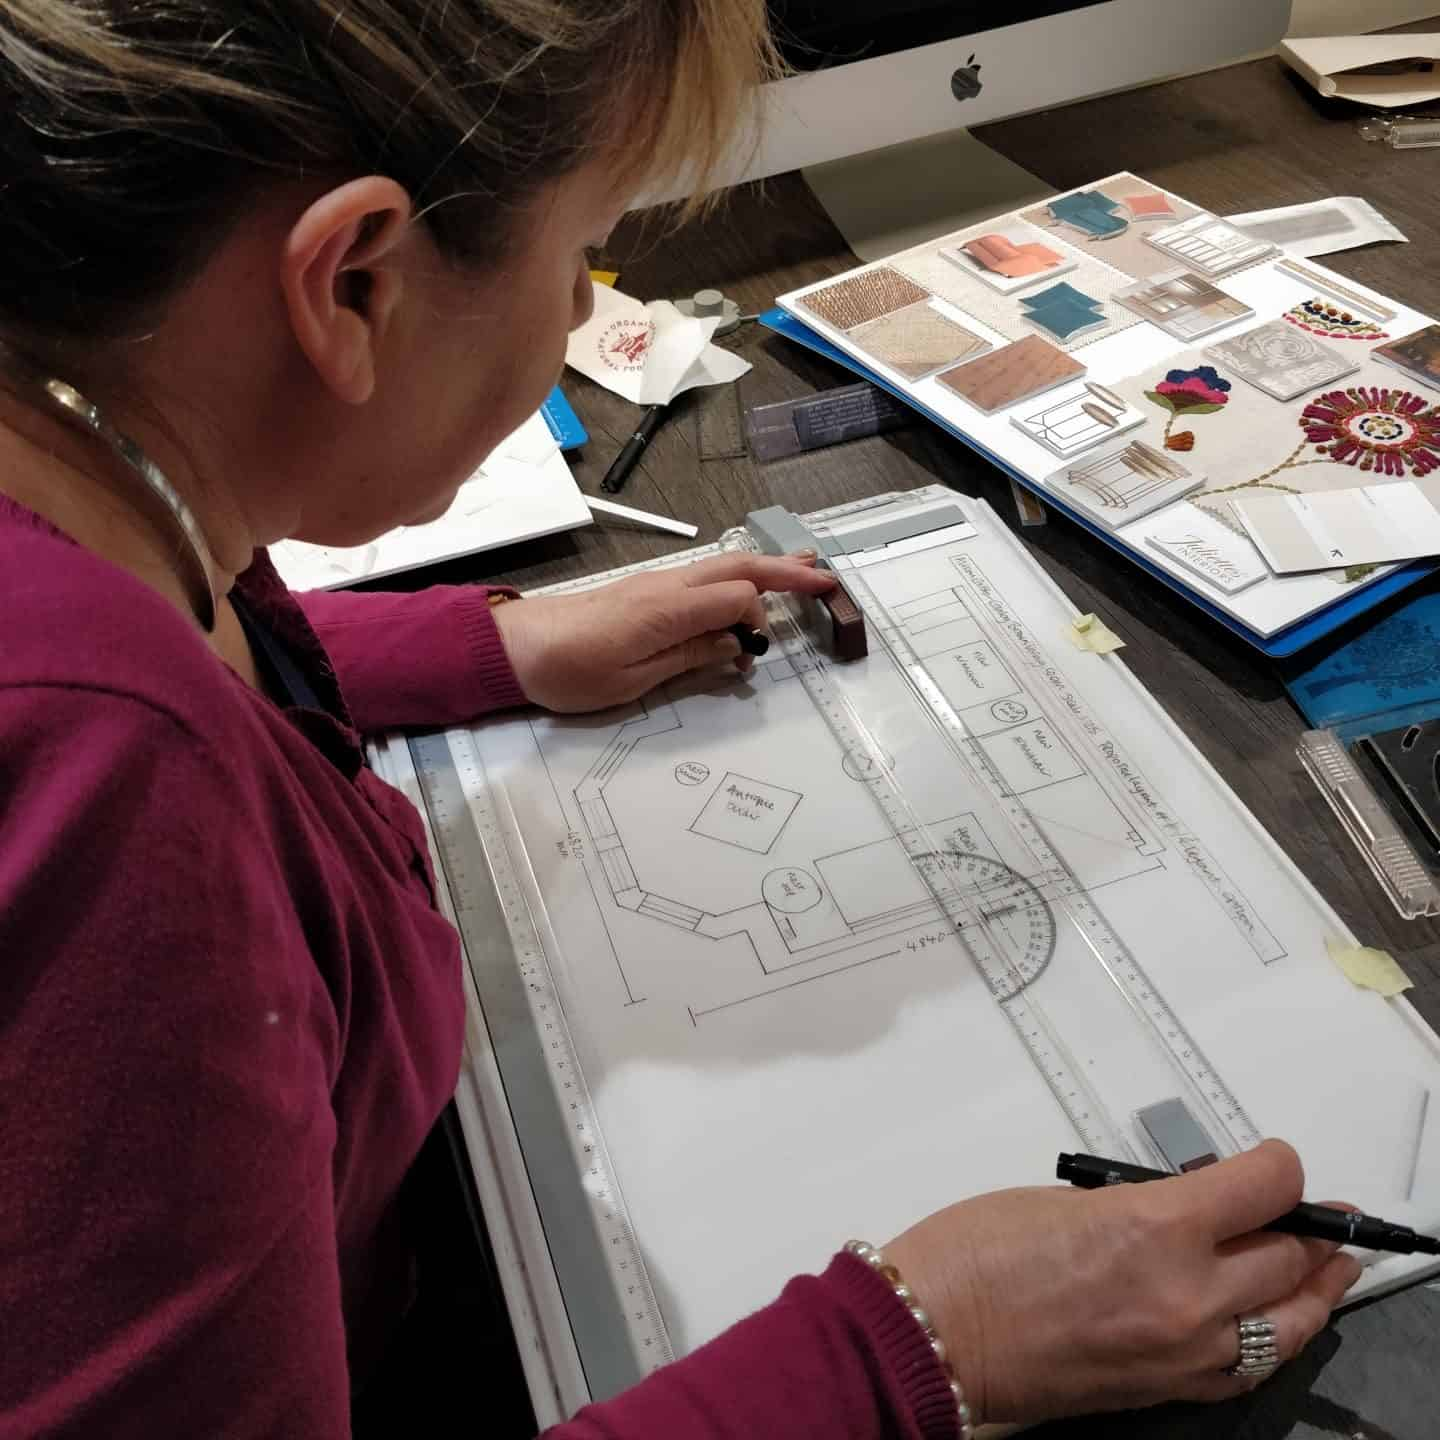 Drawing up scale floor plans at Juliette's interior design school in London